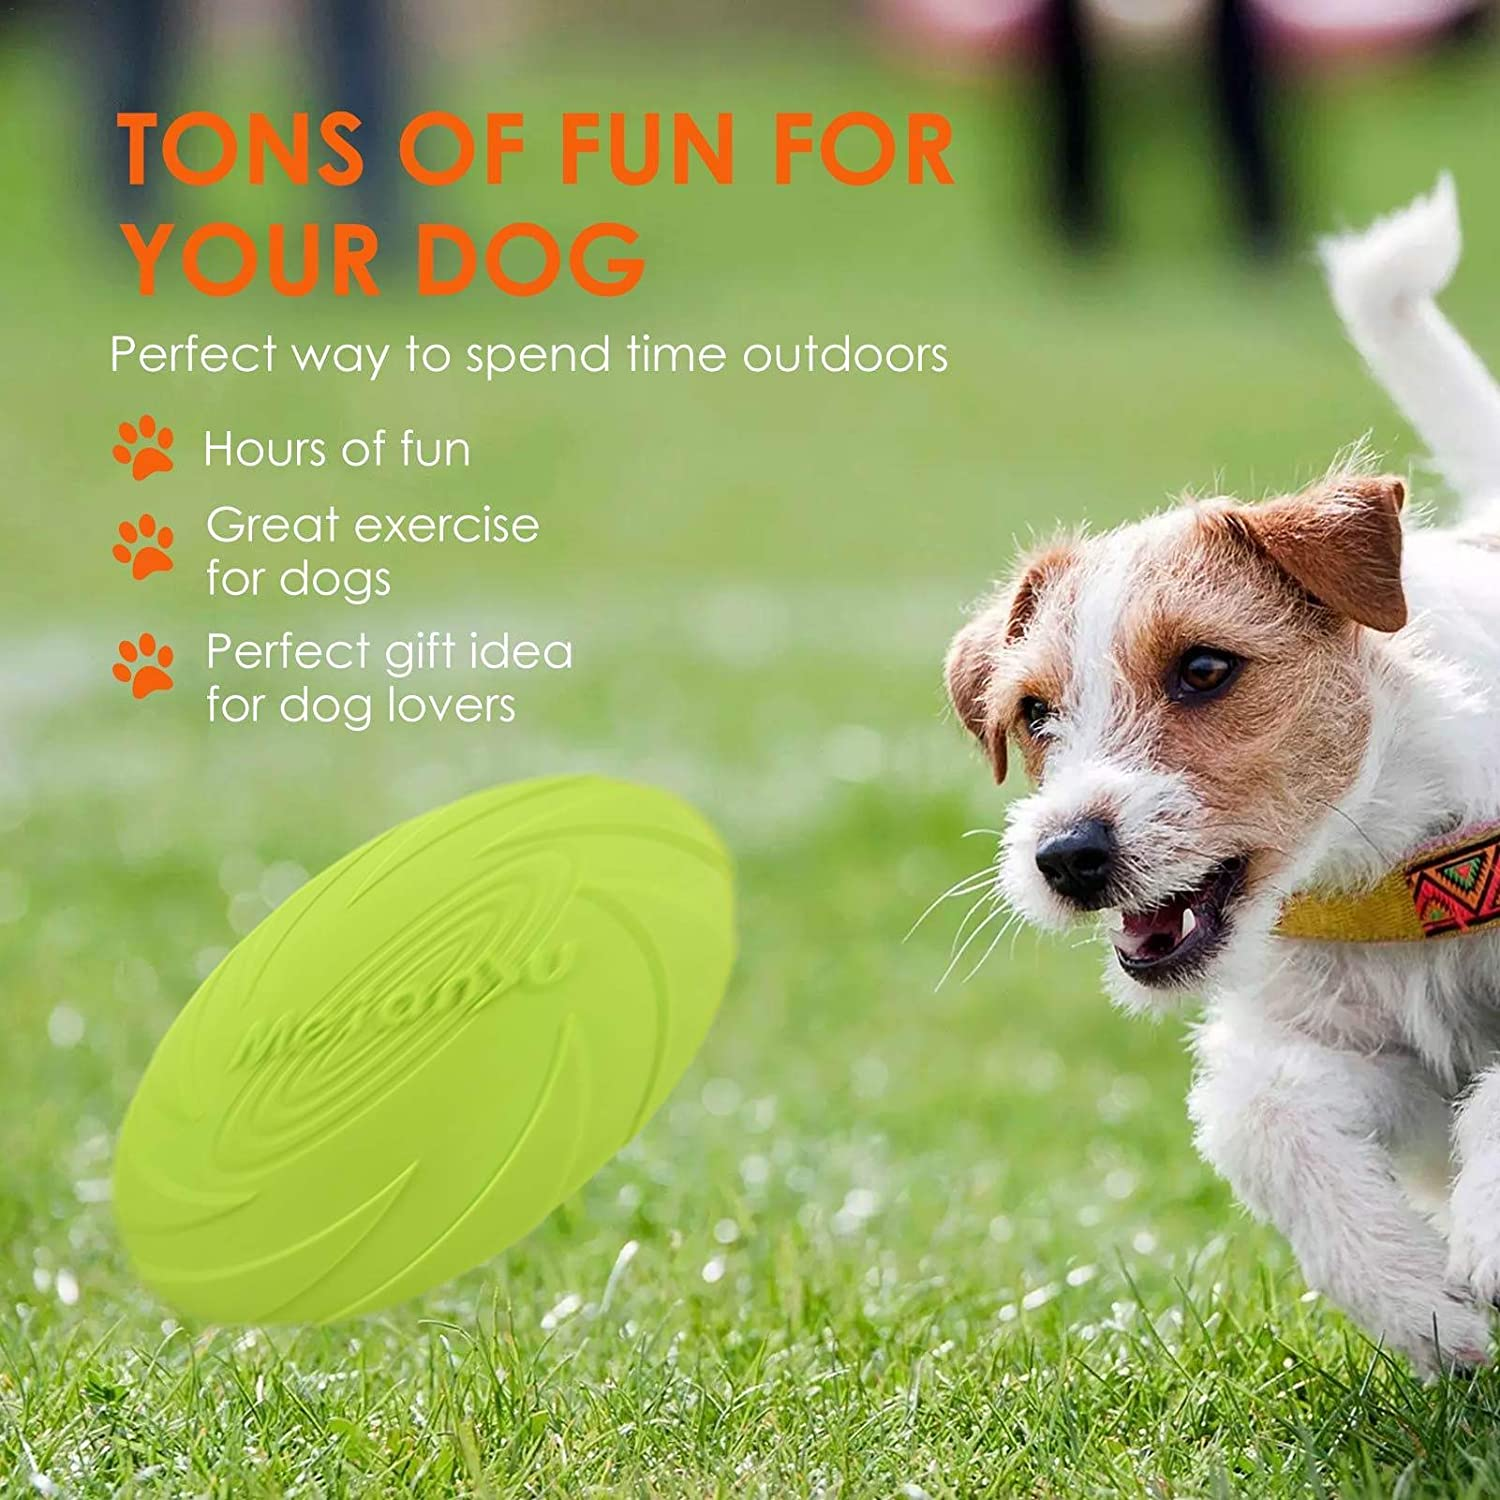 Lightweight Interactive Flying Toy for Fetch Tug of War Catch comfy Sroomcla Dog Indestructible Disc for Large Dogs Soft Rubber Frisbees for Training Heavy Duty Durable Freezbee for Pets